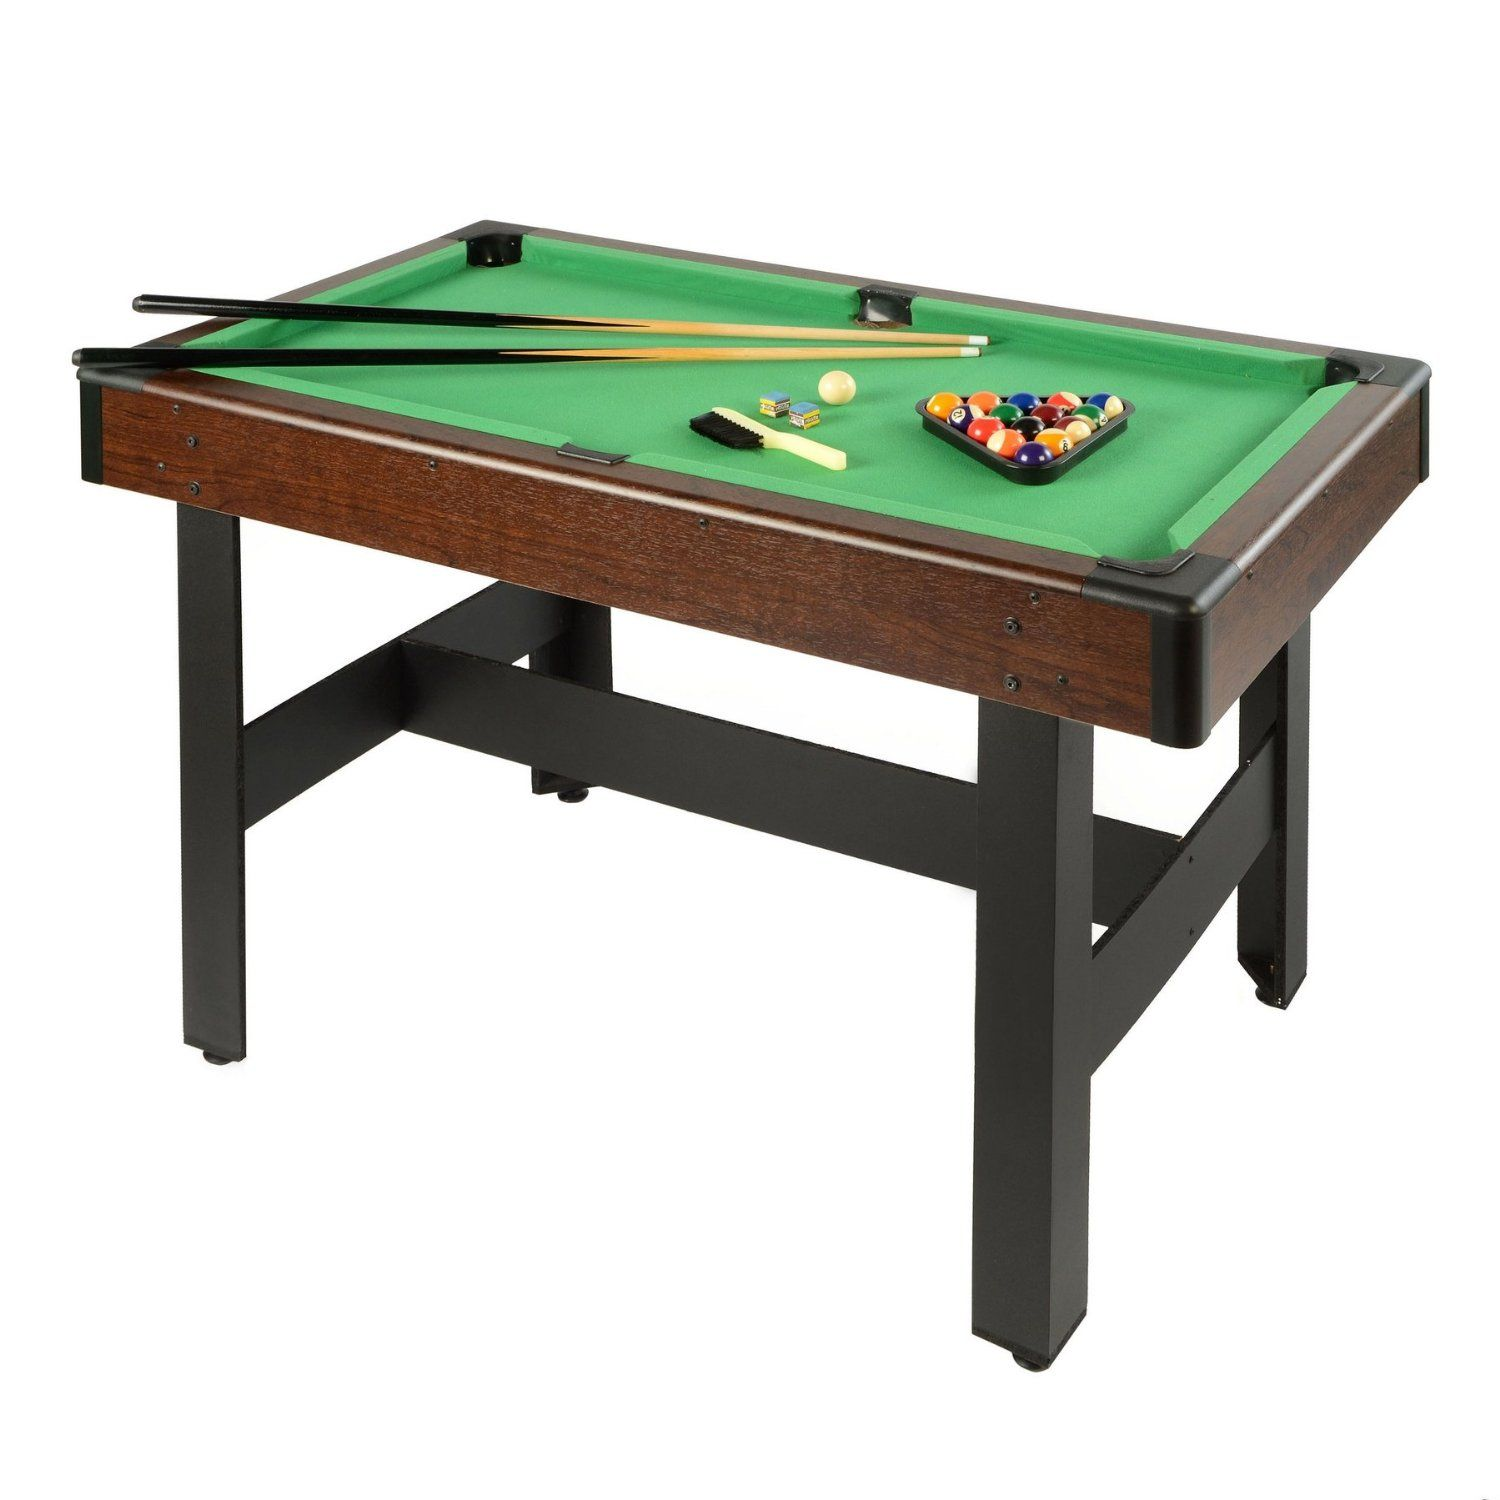 Voit In Billiards Table Review The Complete Table Ideas For - Mini billiards table set